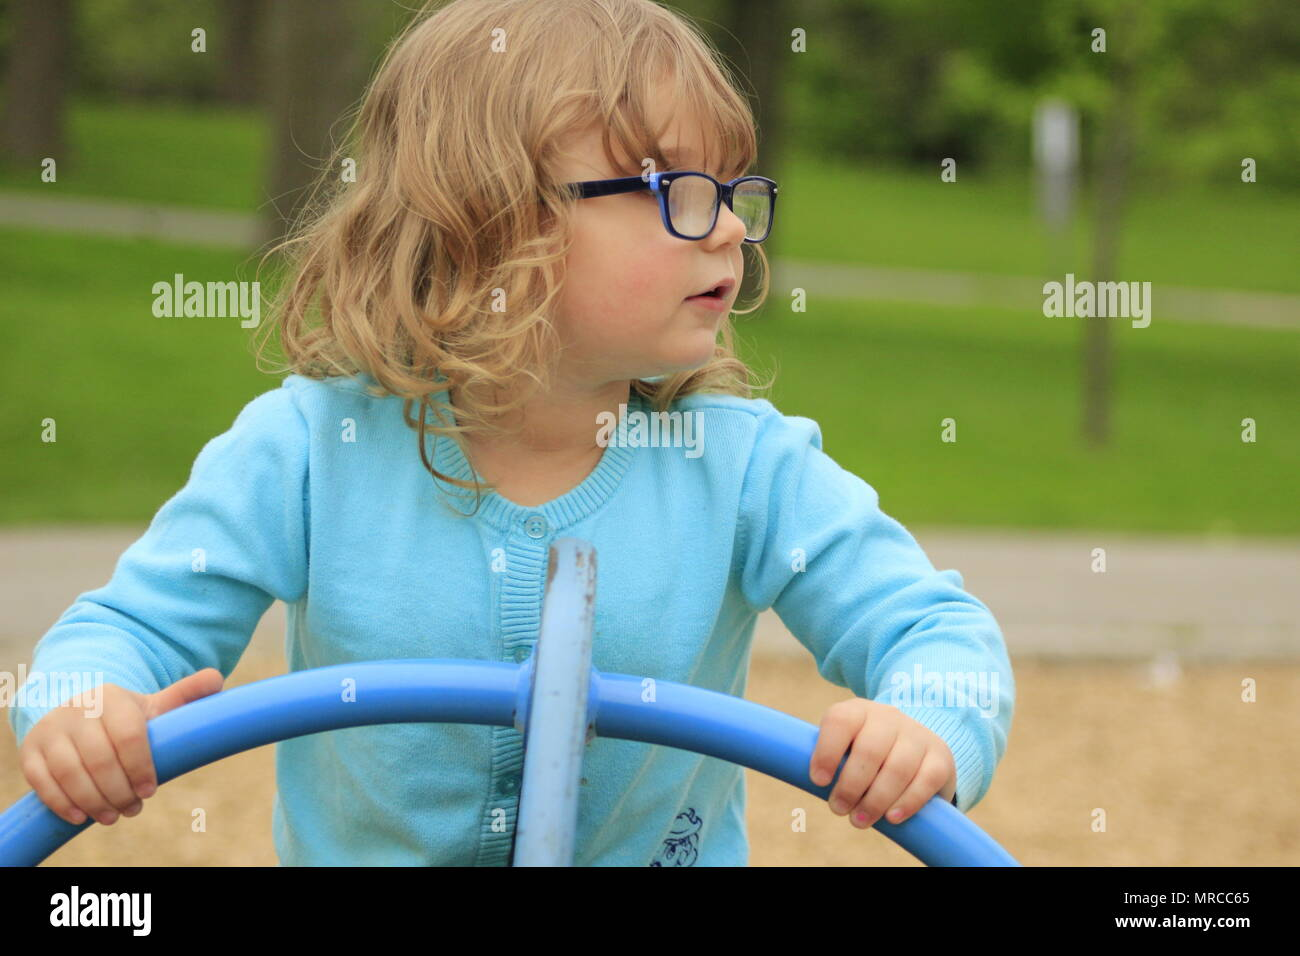 54def9a4e0da Little girl with glasses and a blue shirt playing on a playground at school  aged 3